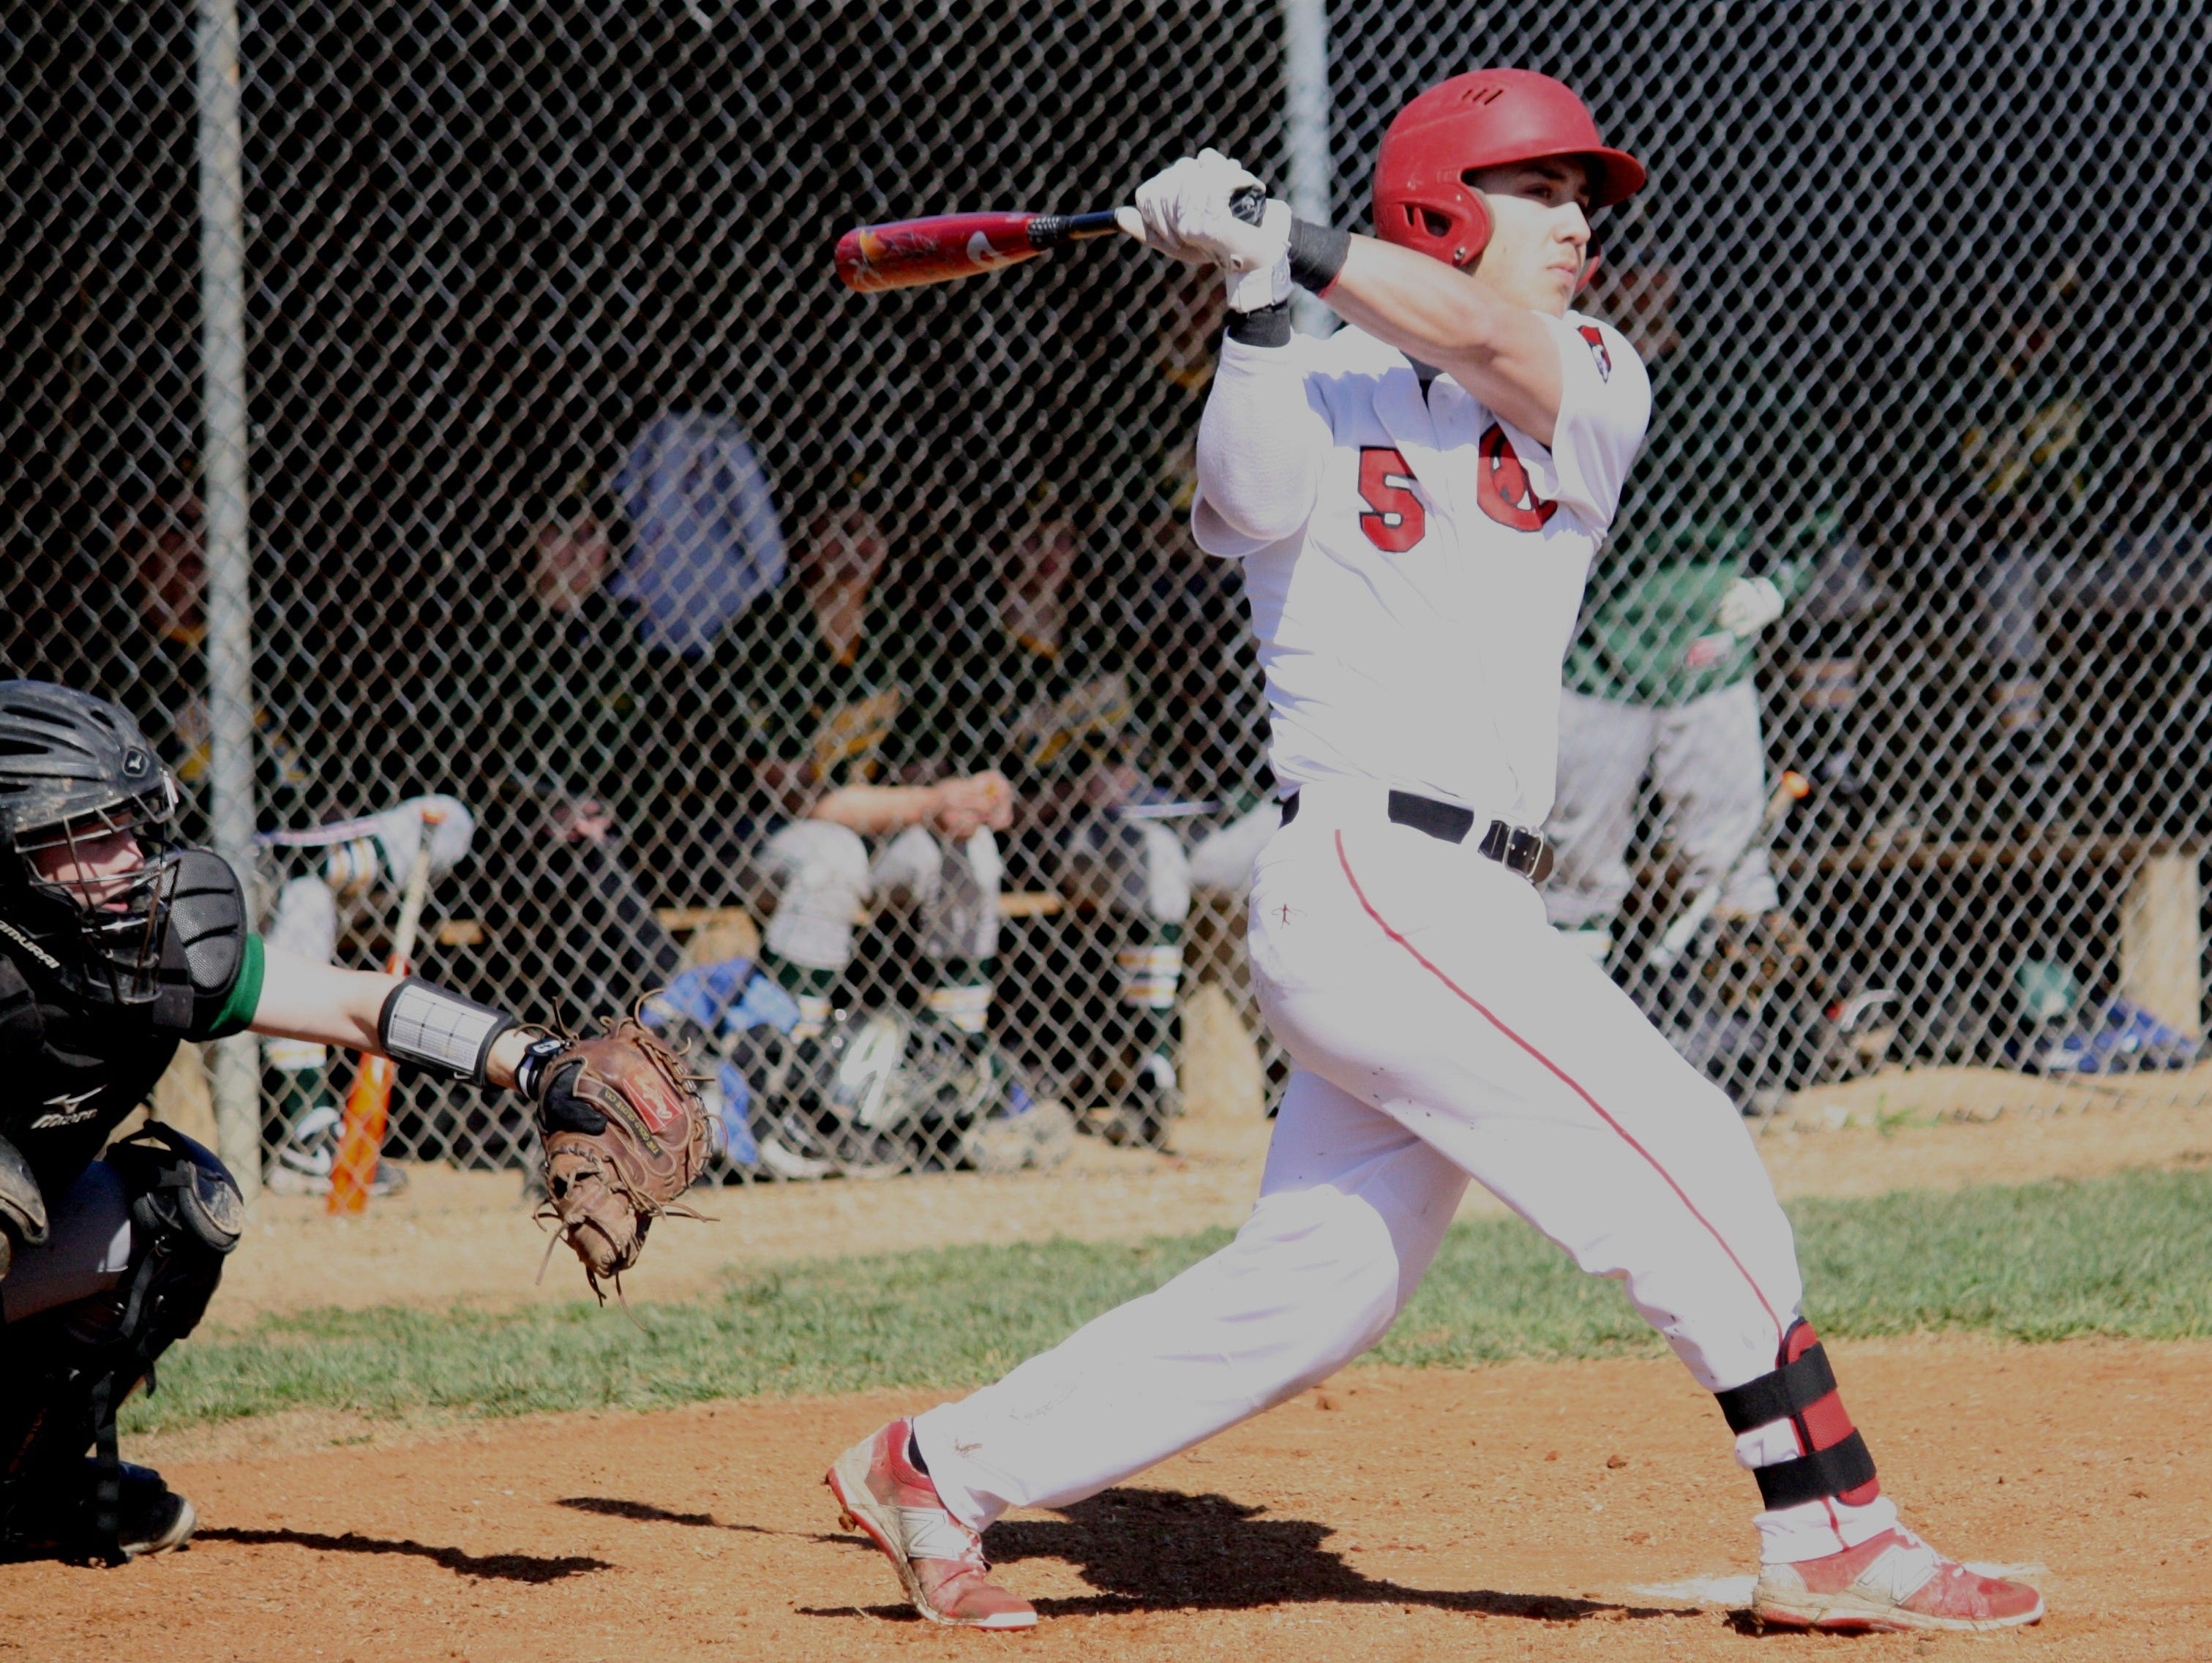 Colerain senior Jake Murray, No. 5, ripped a foul ball down the right side against Sycamore on April 11, 2015.